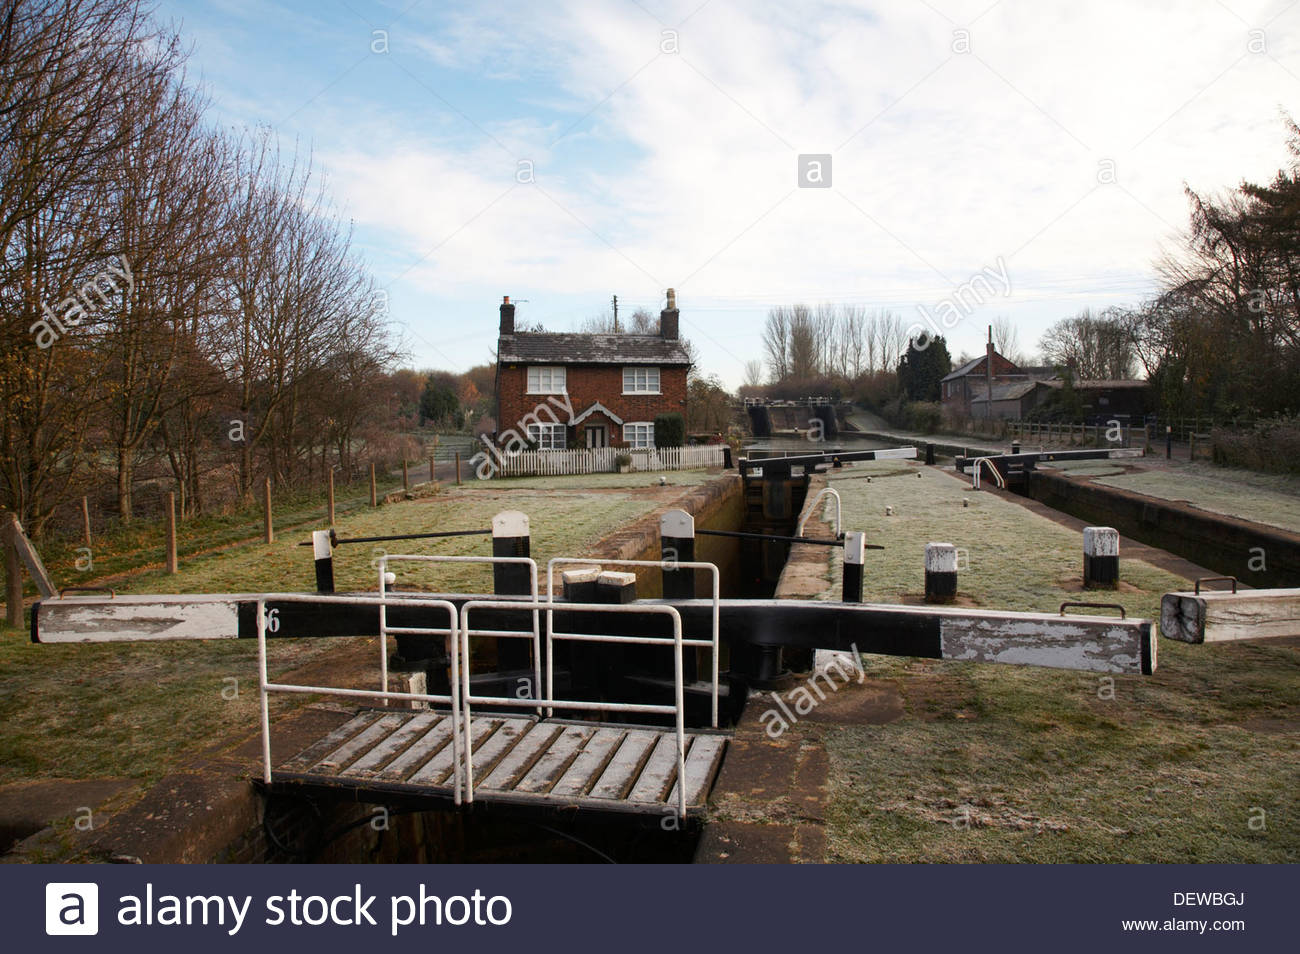 Lock keepers cottage in winter with locks in Wheelock, Cheshire, UK - Stock Image